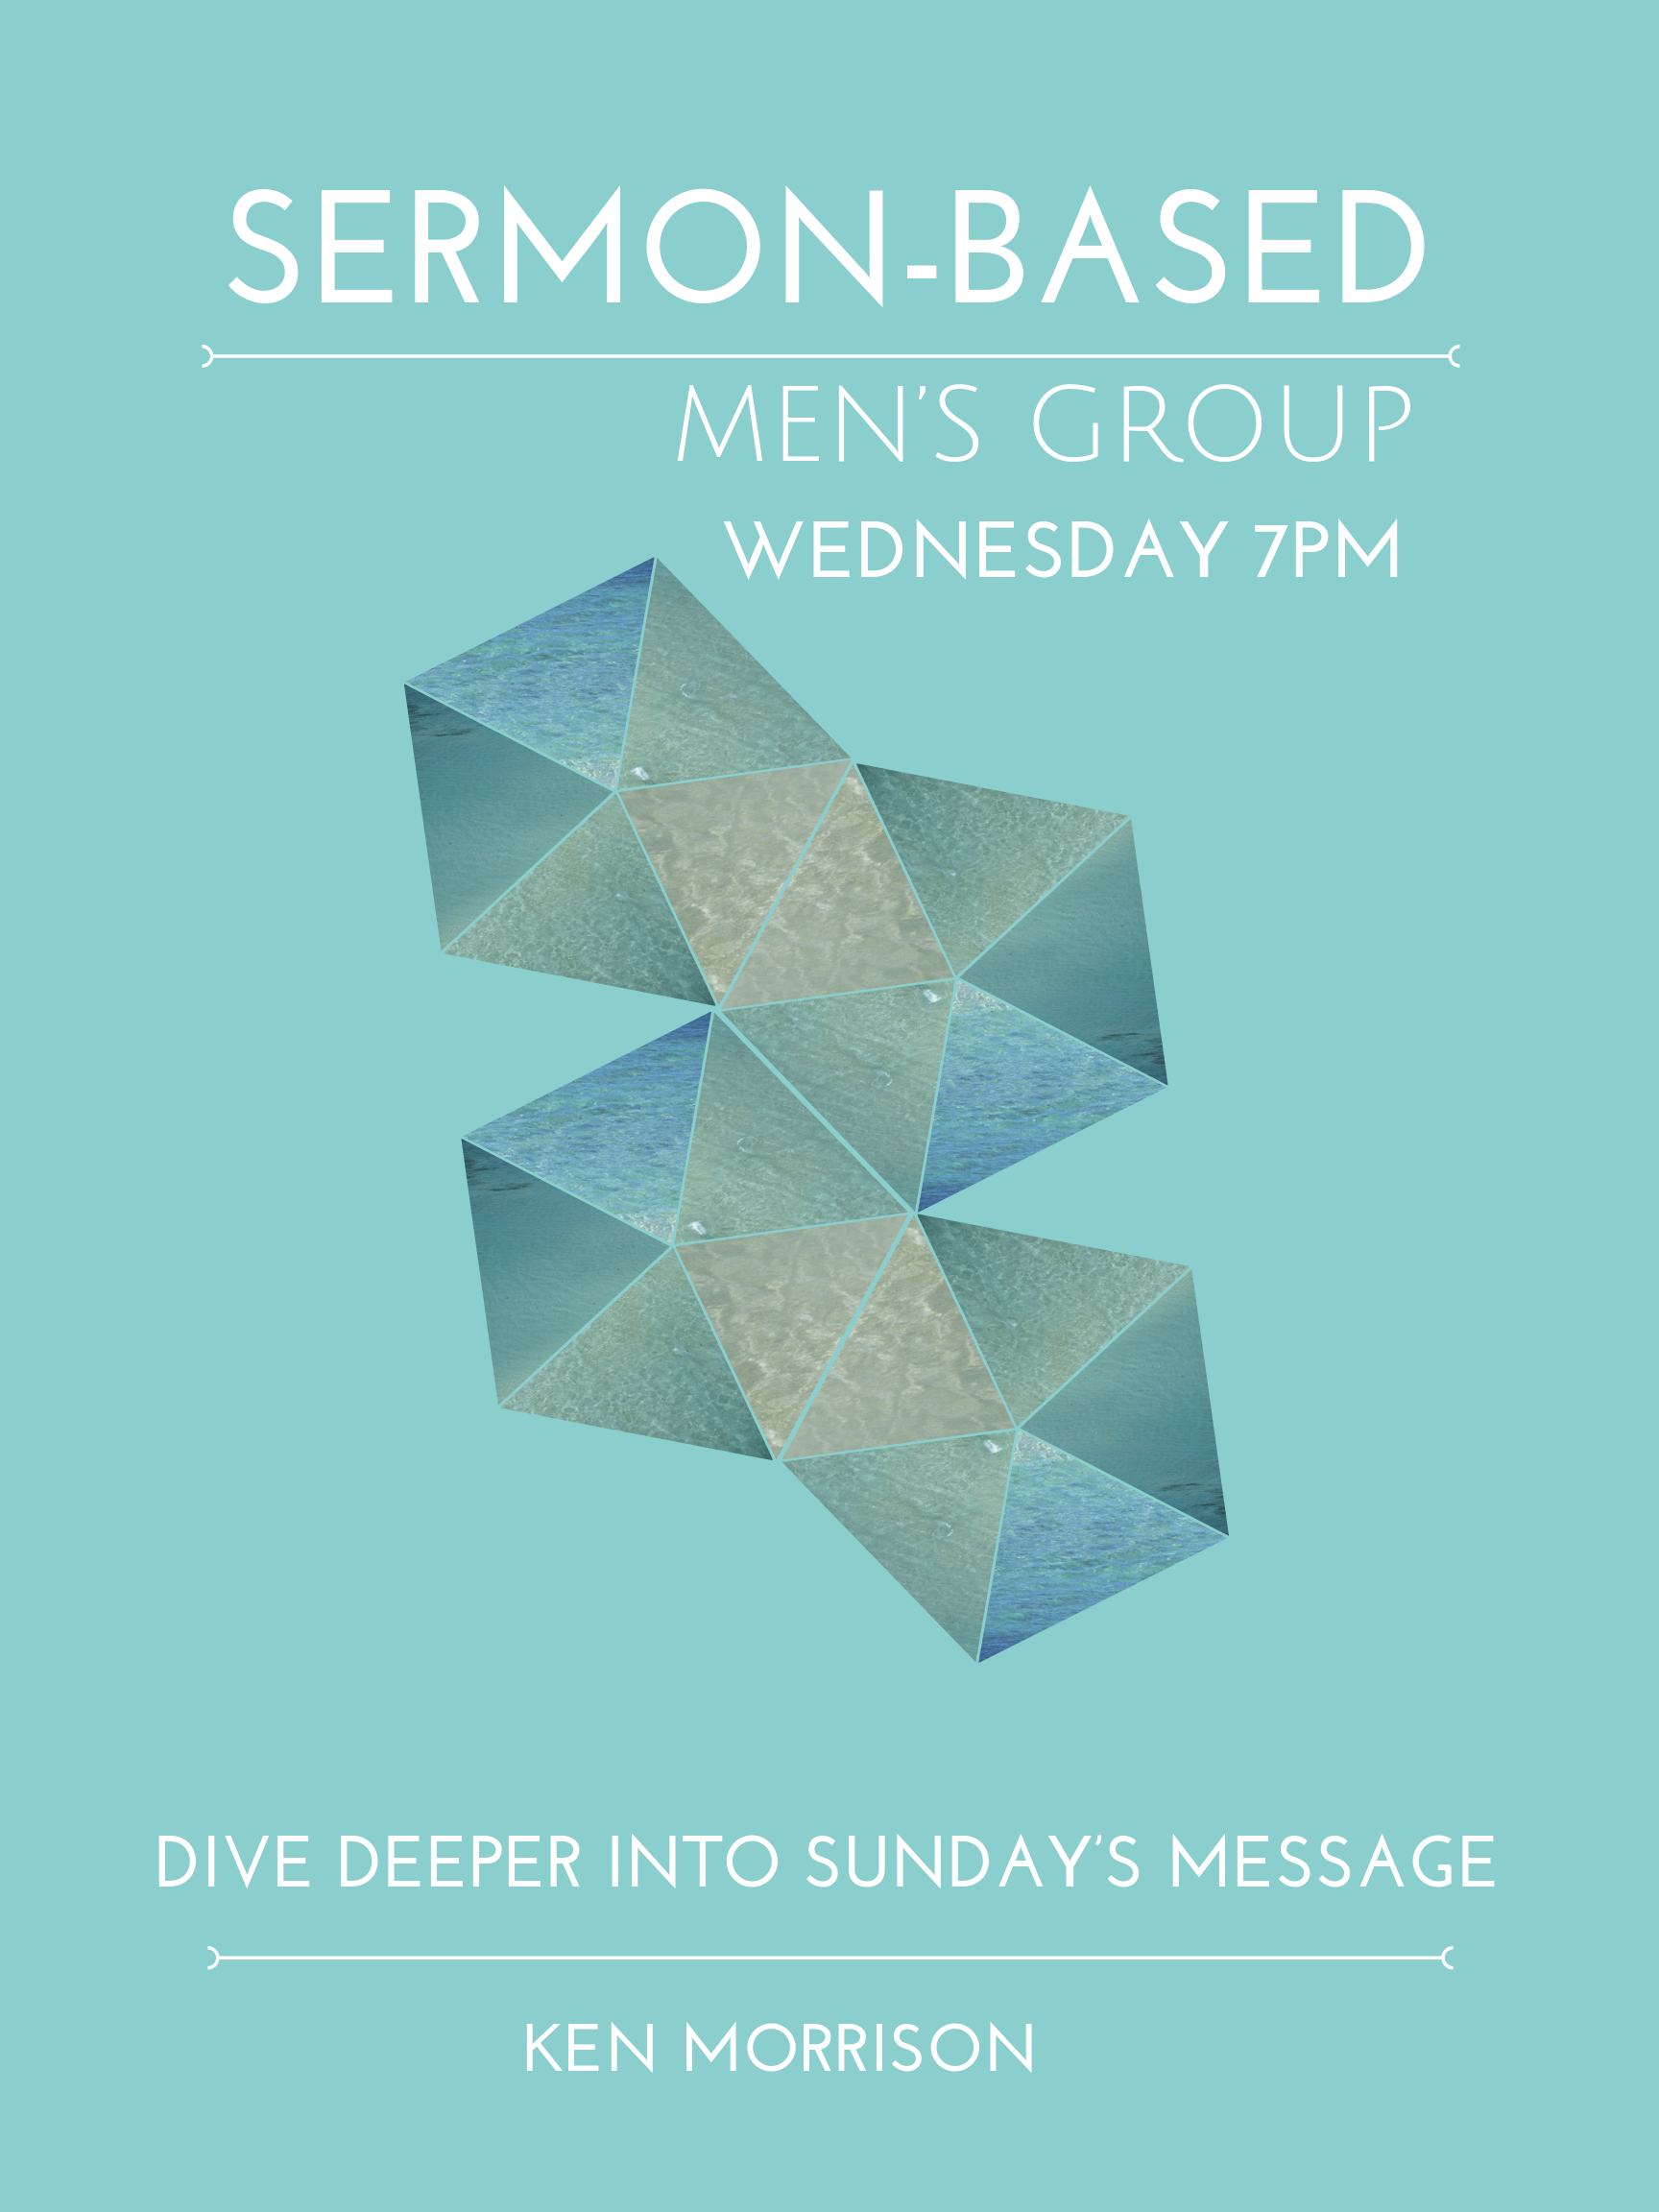 Men's Sermon-based Group - Join other men each week to dive deeper into Sunday's message. Learn what others are doing in their faith journey. Learn best practices from those in different seasons of life. This group meets each Thursday 6:30PM FCKen Morrison and Matt Vogt